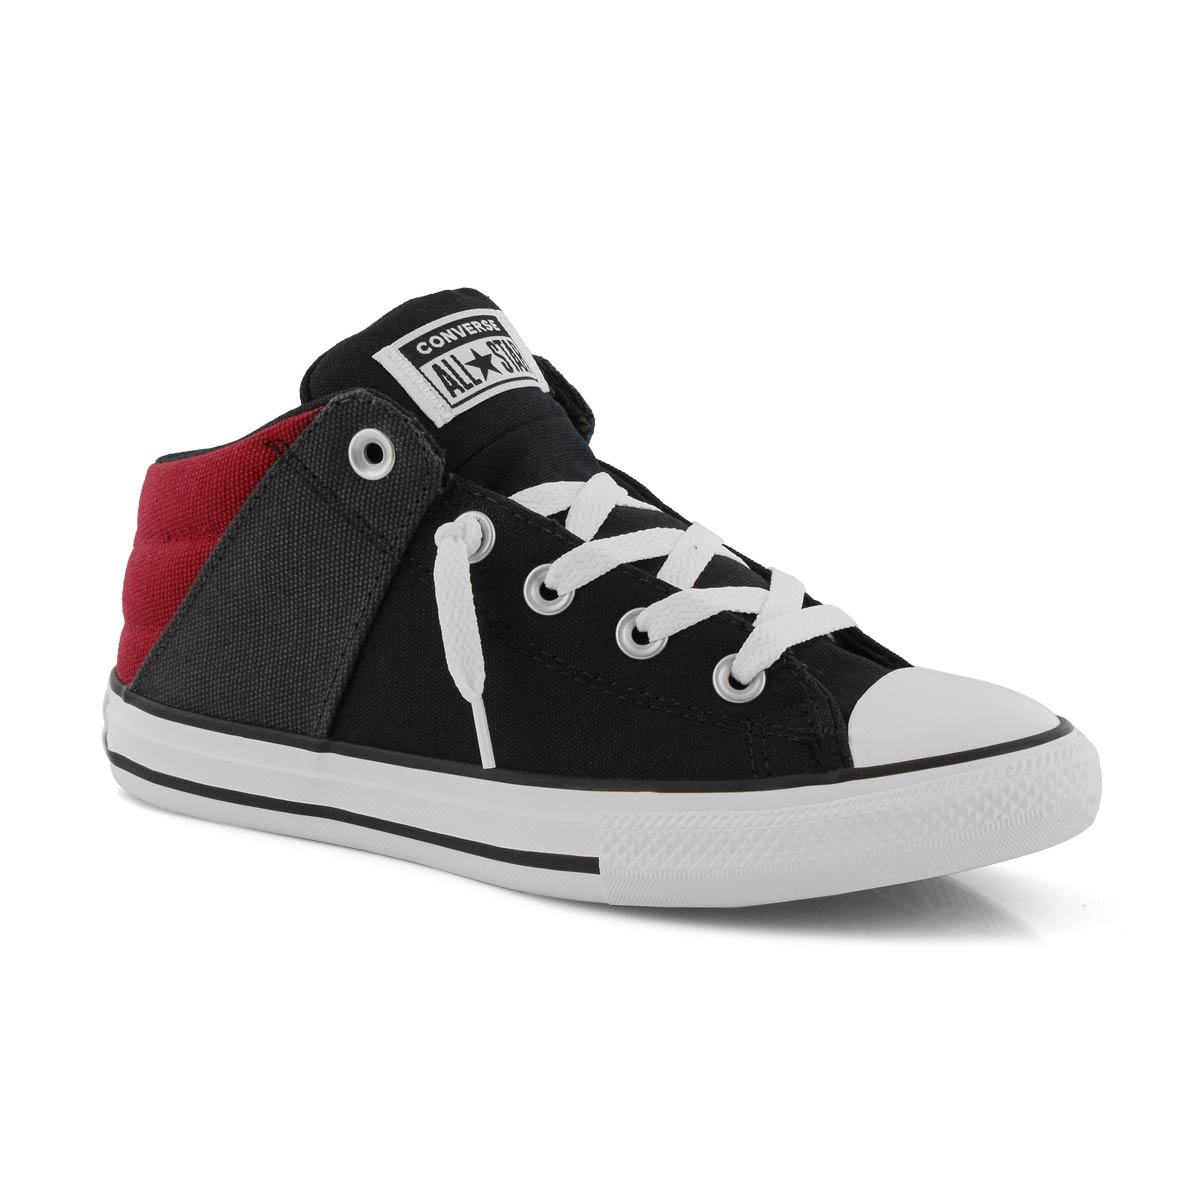 Bys CTAS Axel Street Mid bk/gry/red snkr